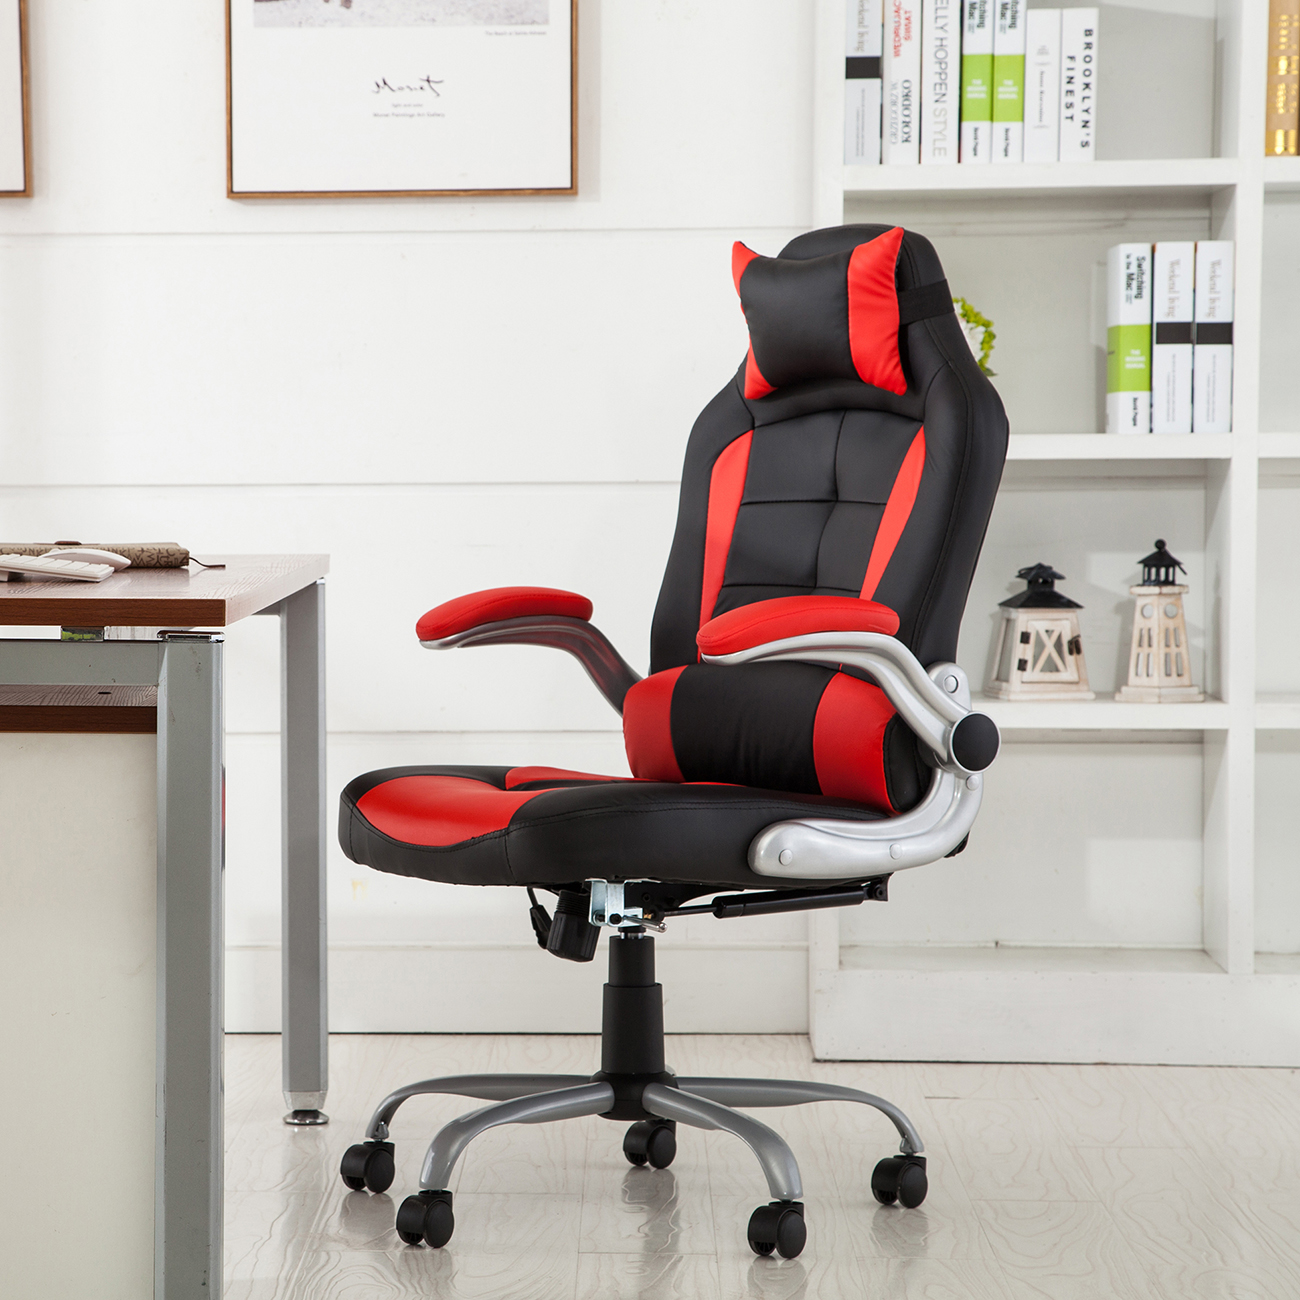 padded office chair double high racing reclining back game headrest pu